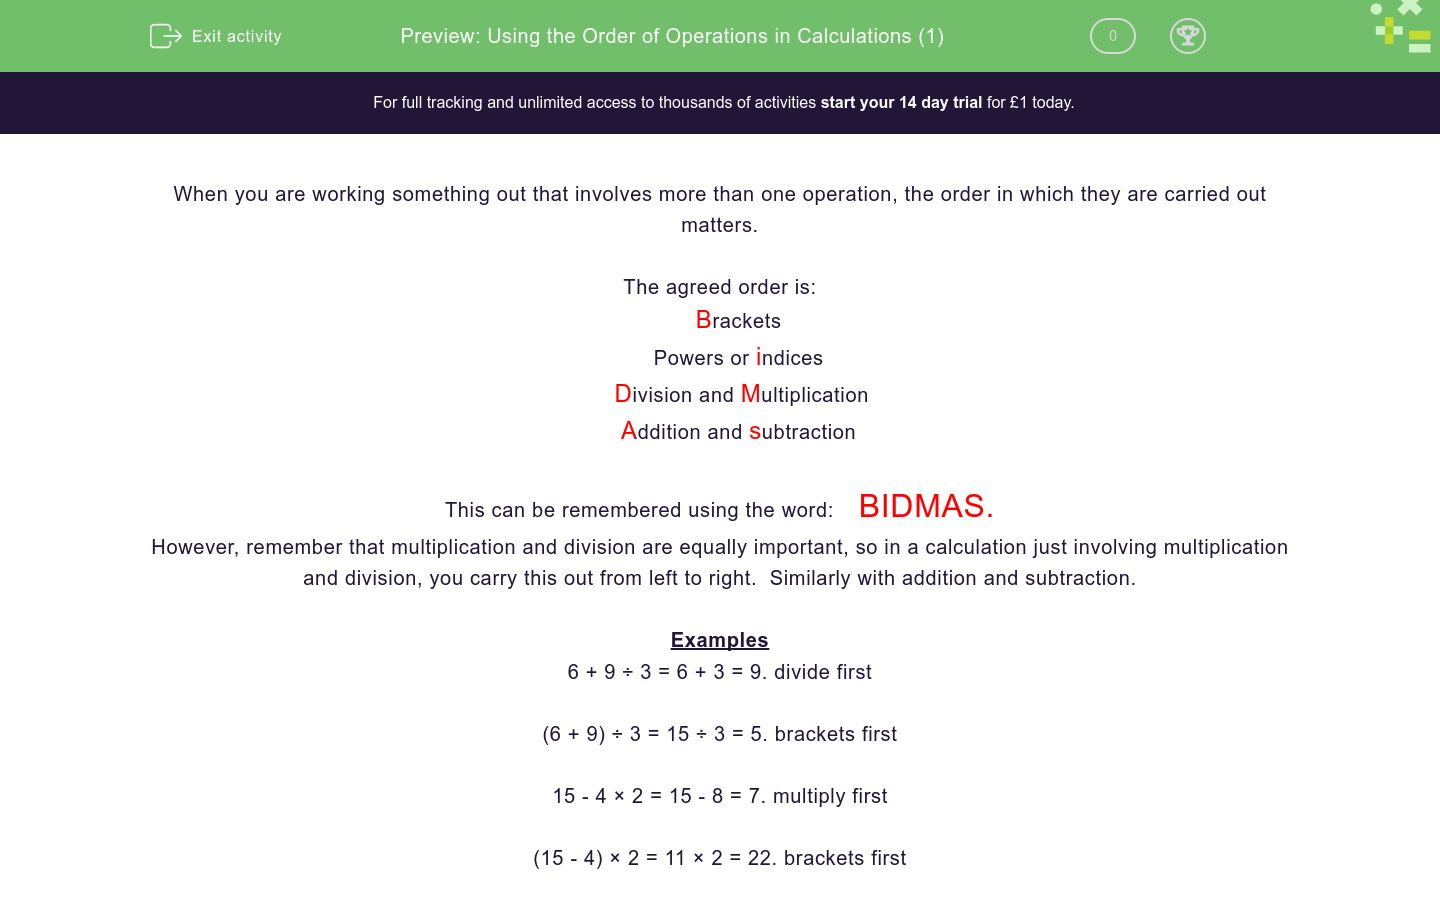 'Using the Order of Operations in Calculations (1)' worksheet